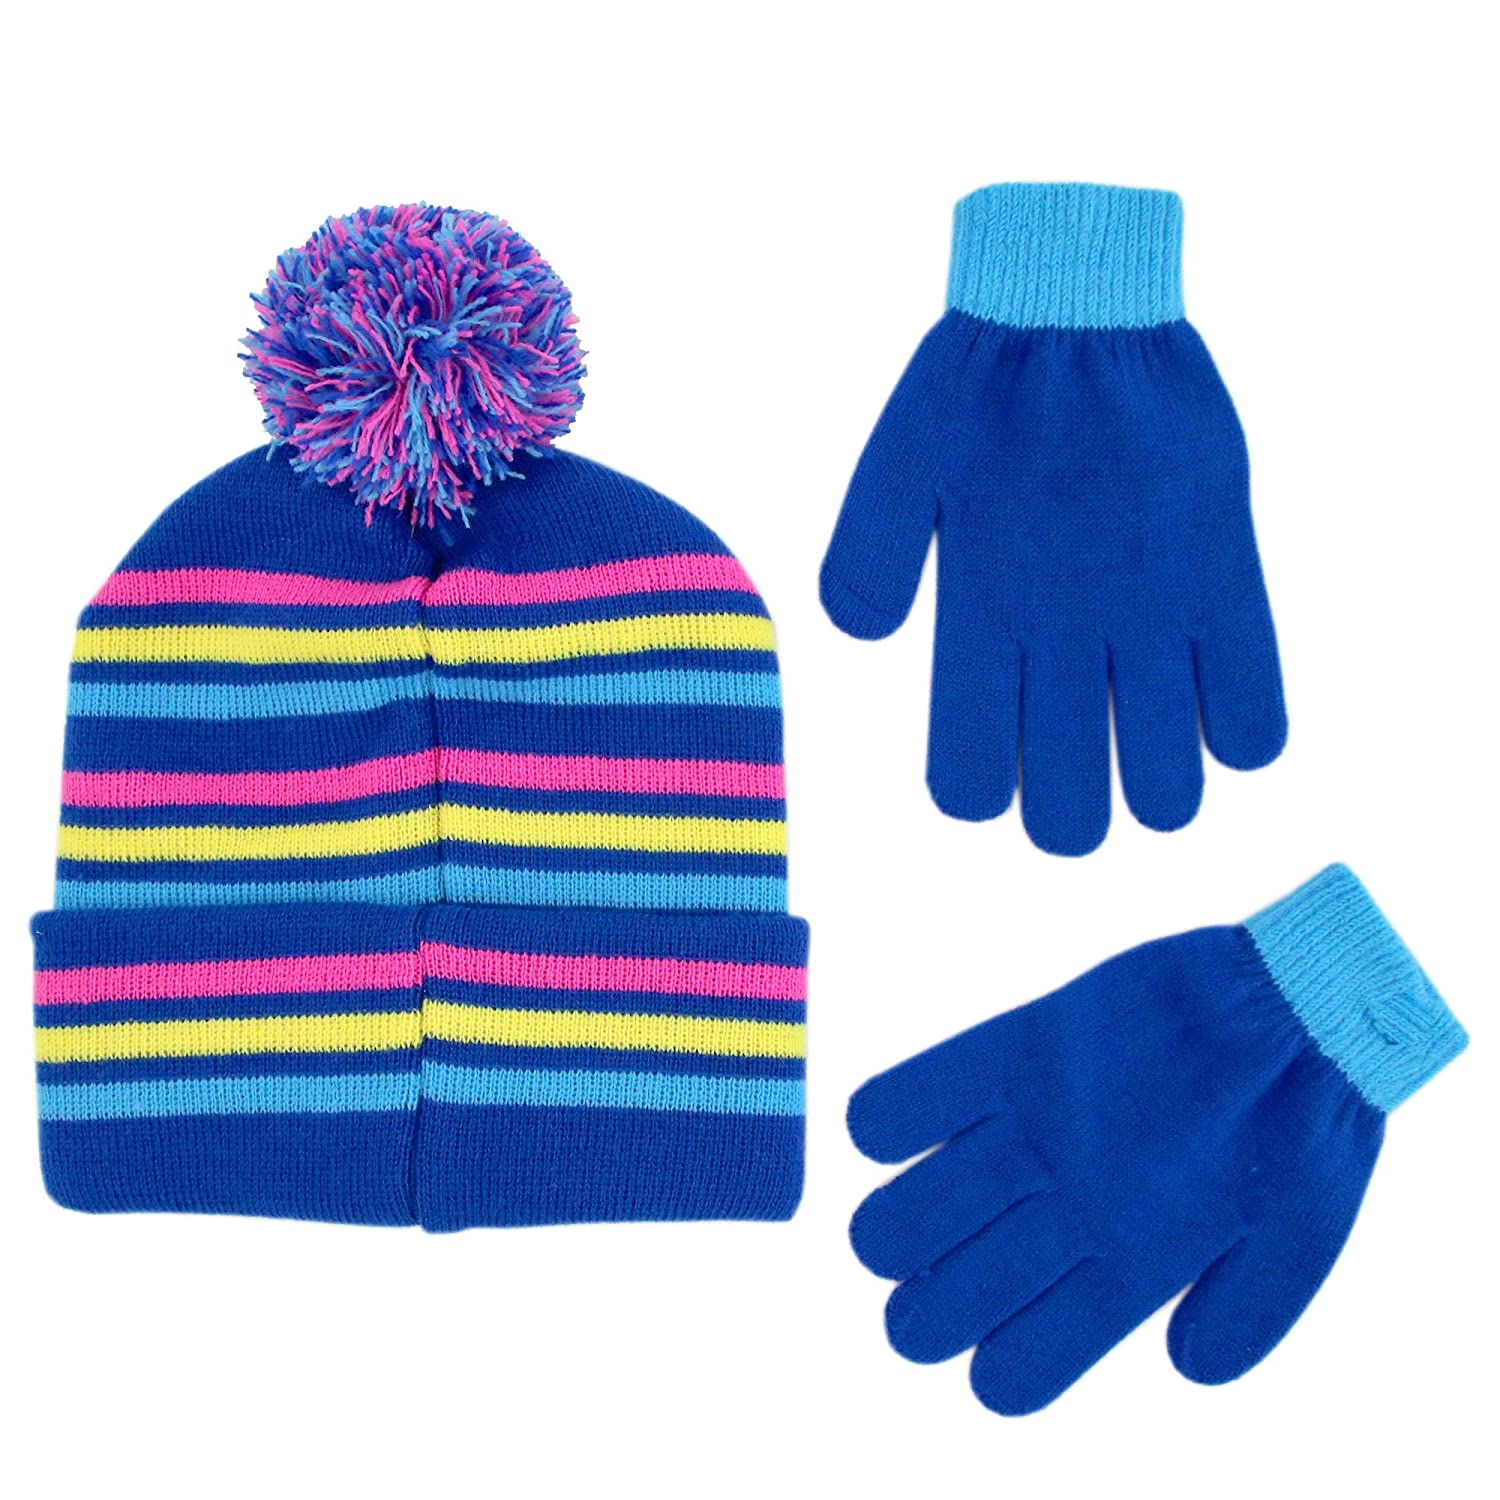 8980bfa7ad0 Amazon.com  Hasbro Girls Little Pony Beanie Hat and Gloves Cold Weather Set